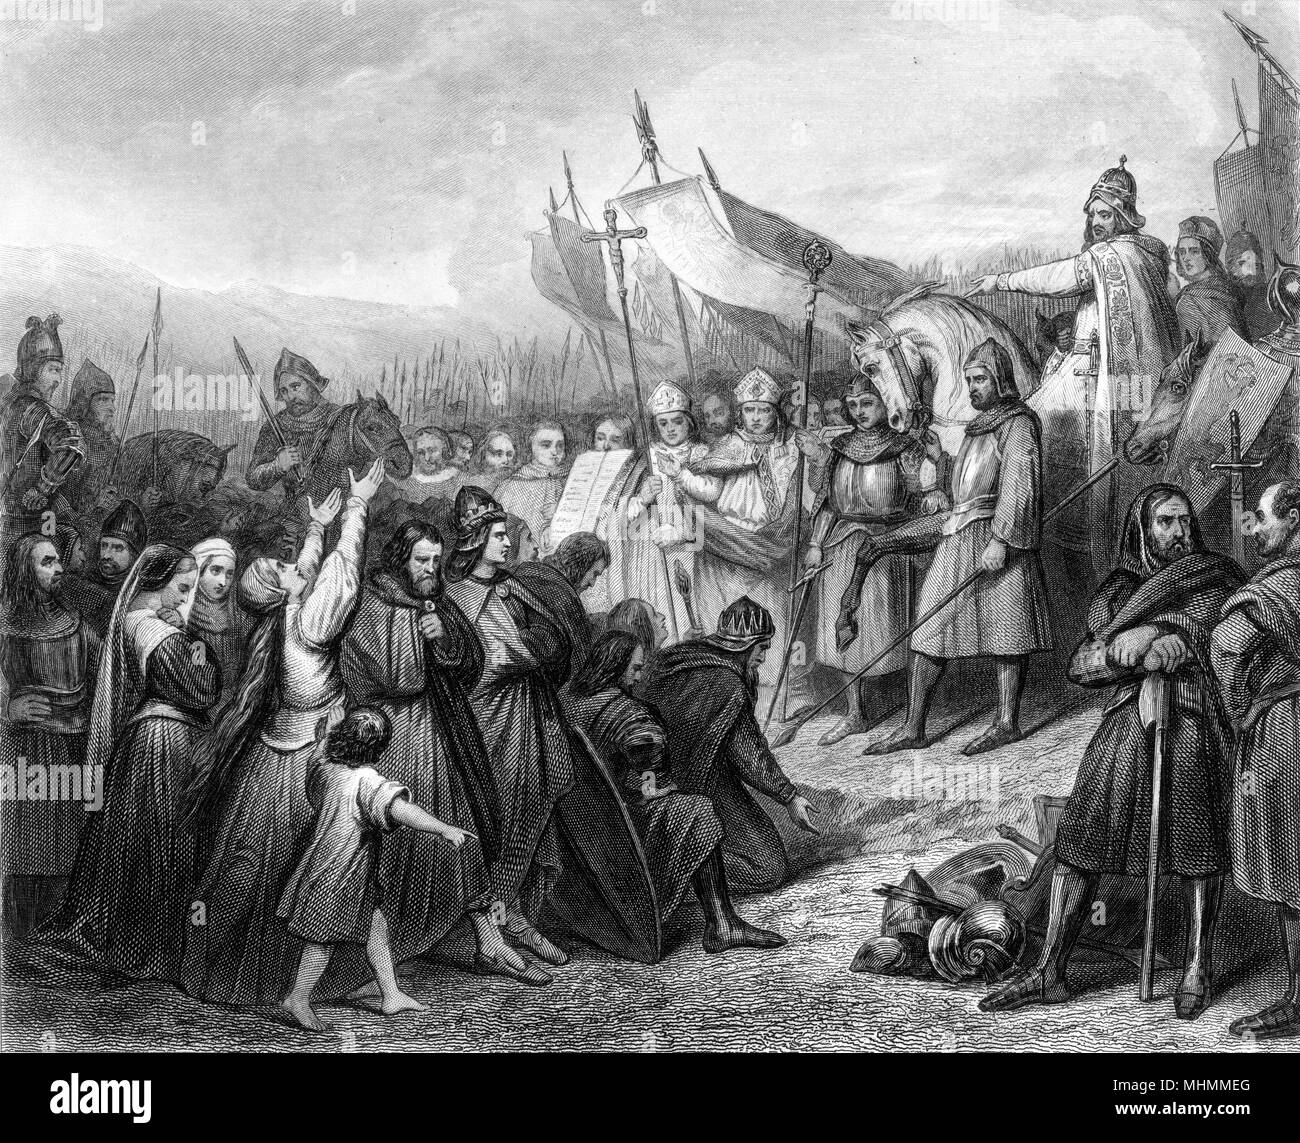 Wittekind (variously spelt), leader of the Saxons, submits to Charlemagne and is baptised at Attigny.      Date: 777 - Stock Image